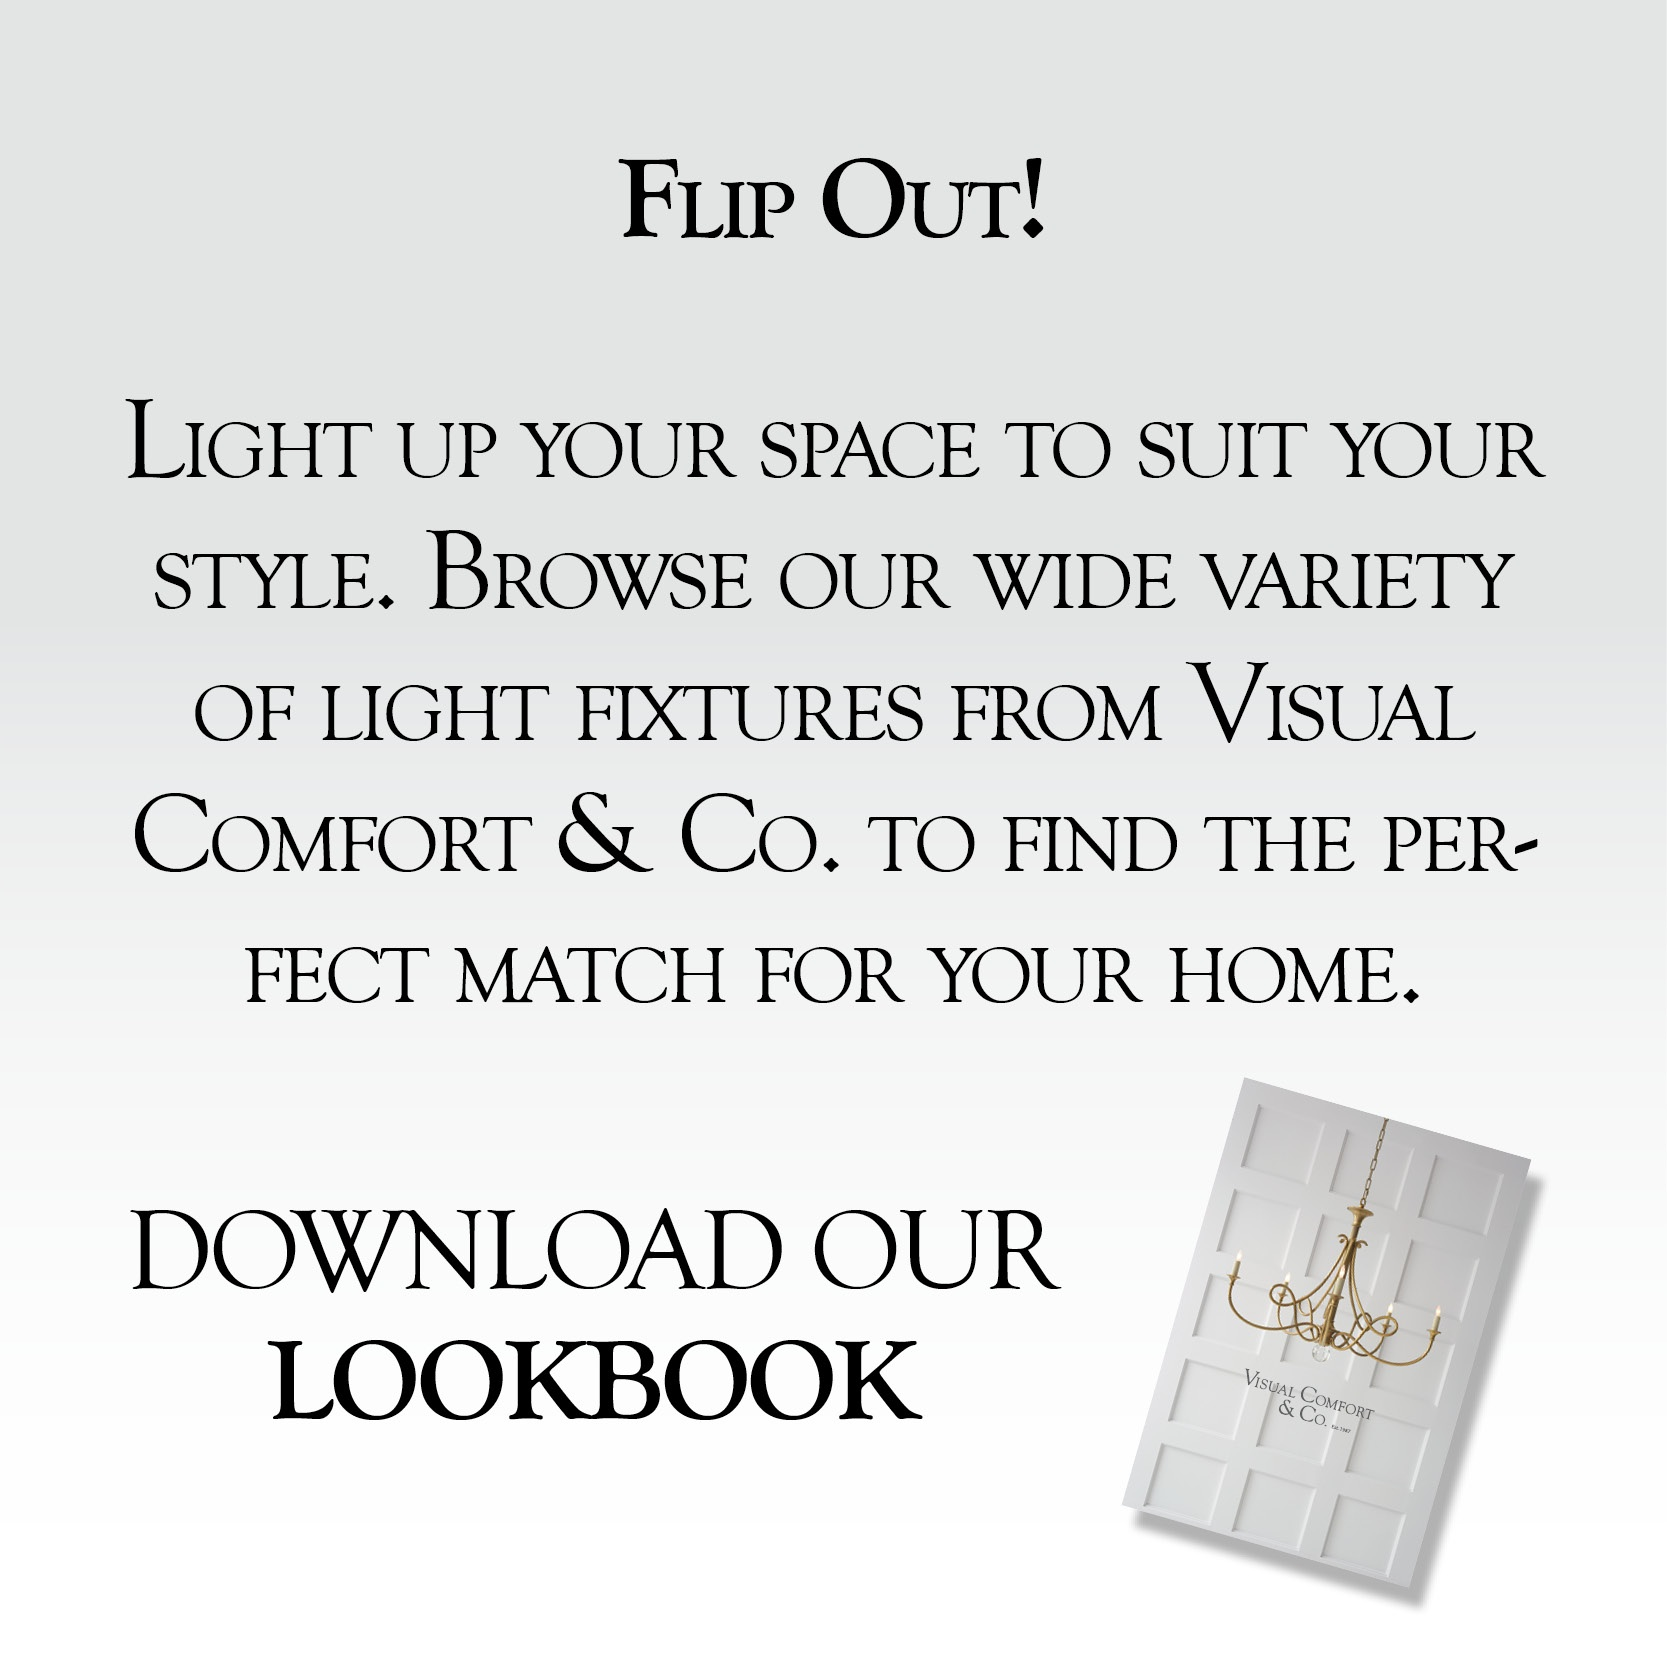 shop lighting lookbook-1.jpg